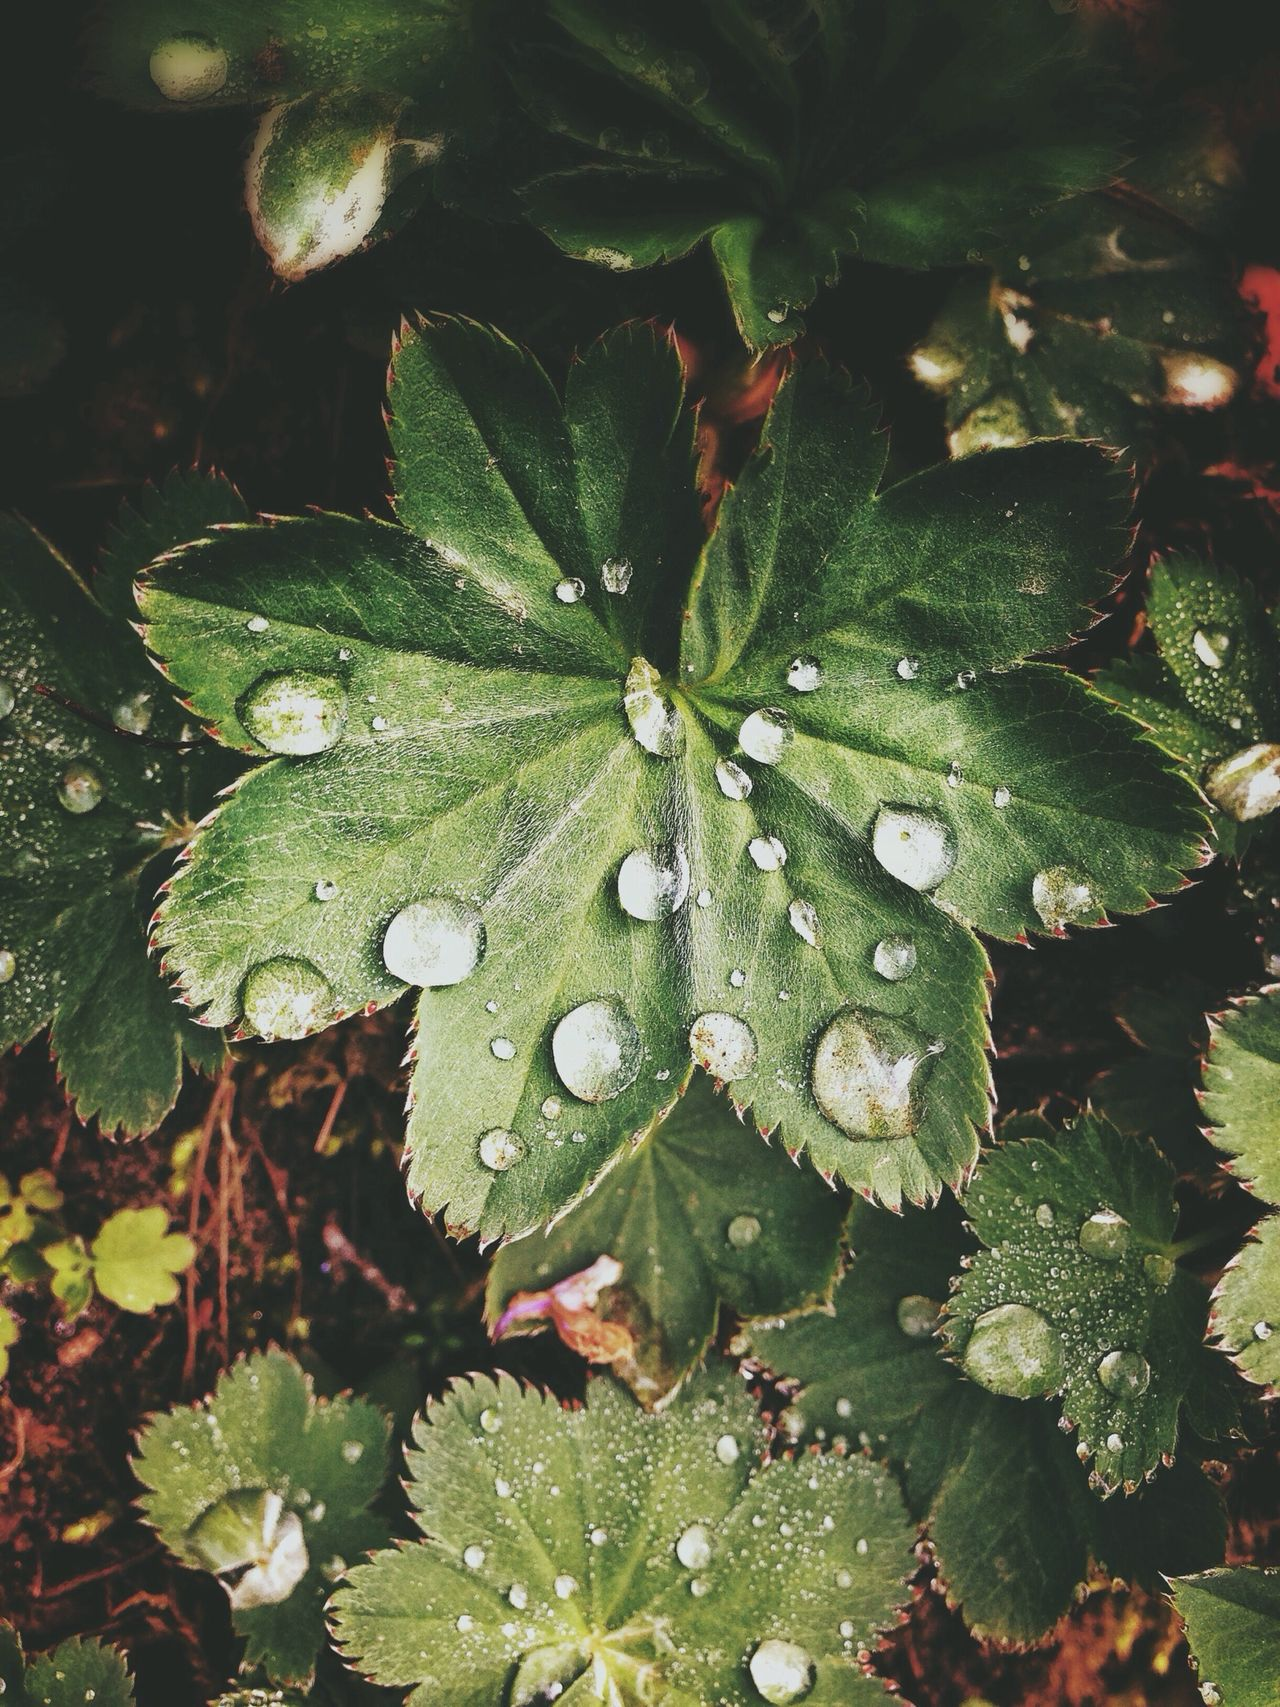 Close-up of wet leaves in forest